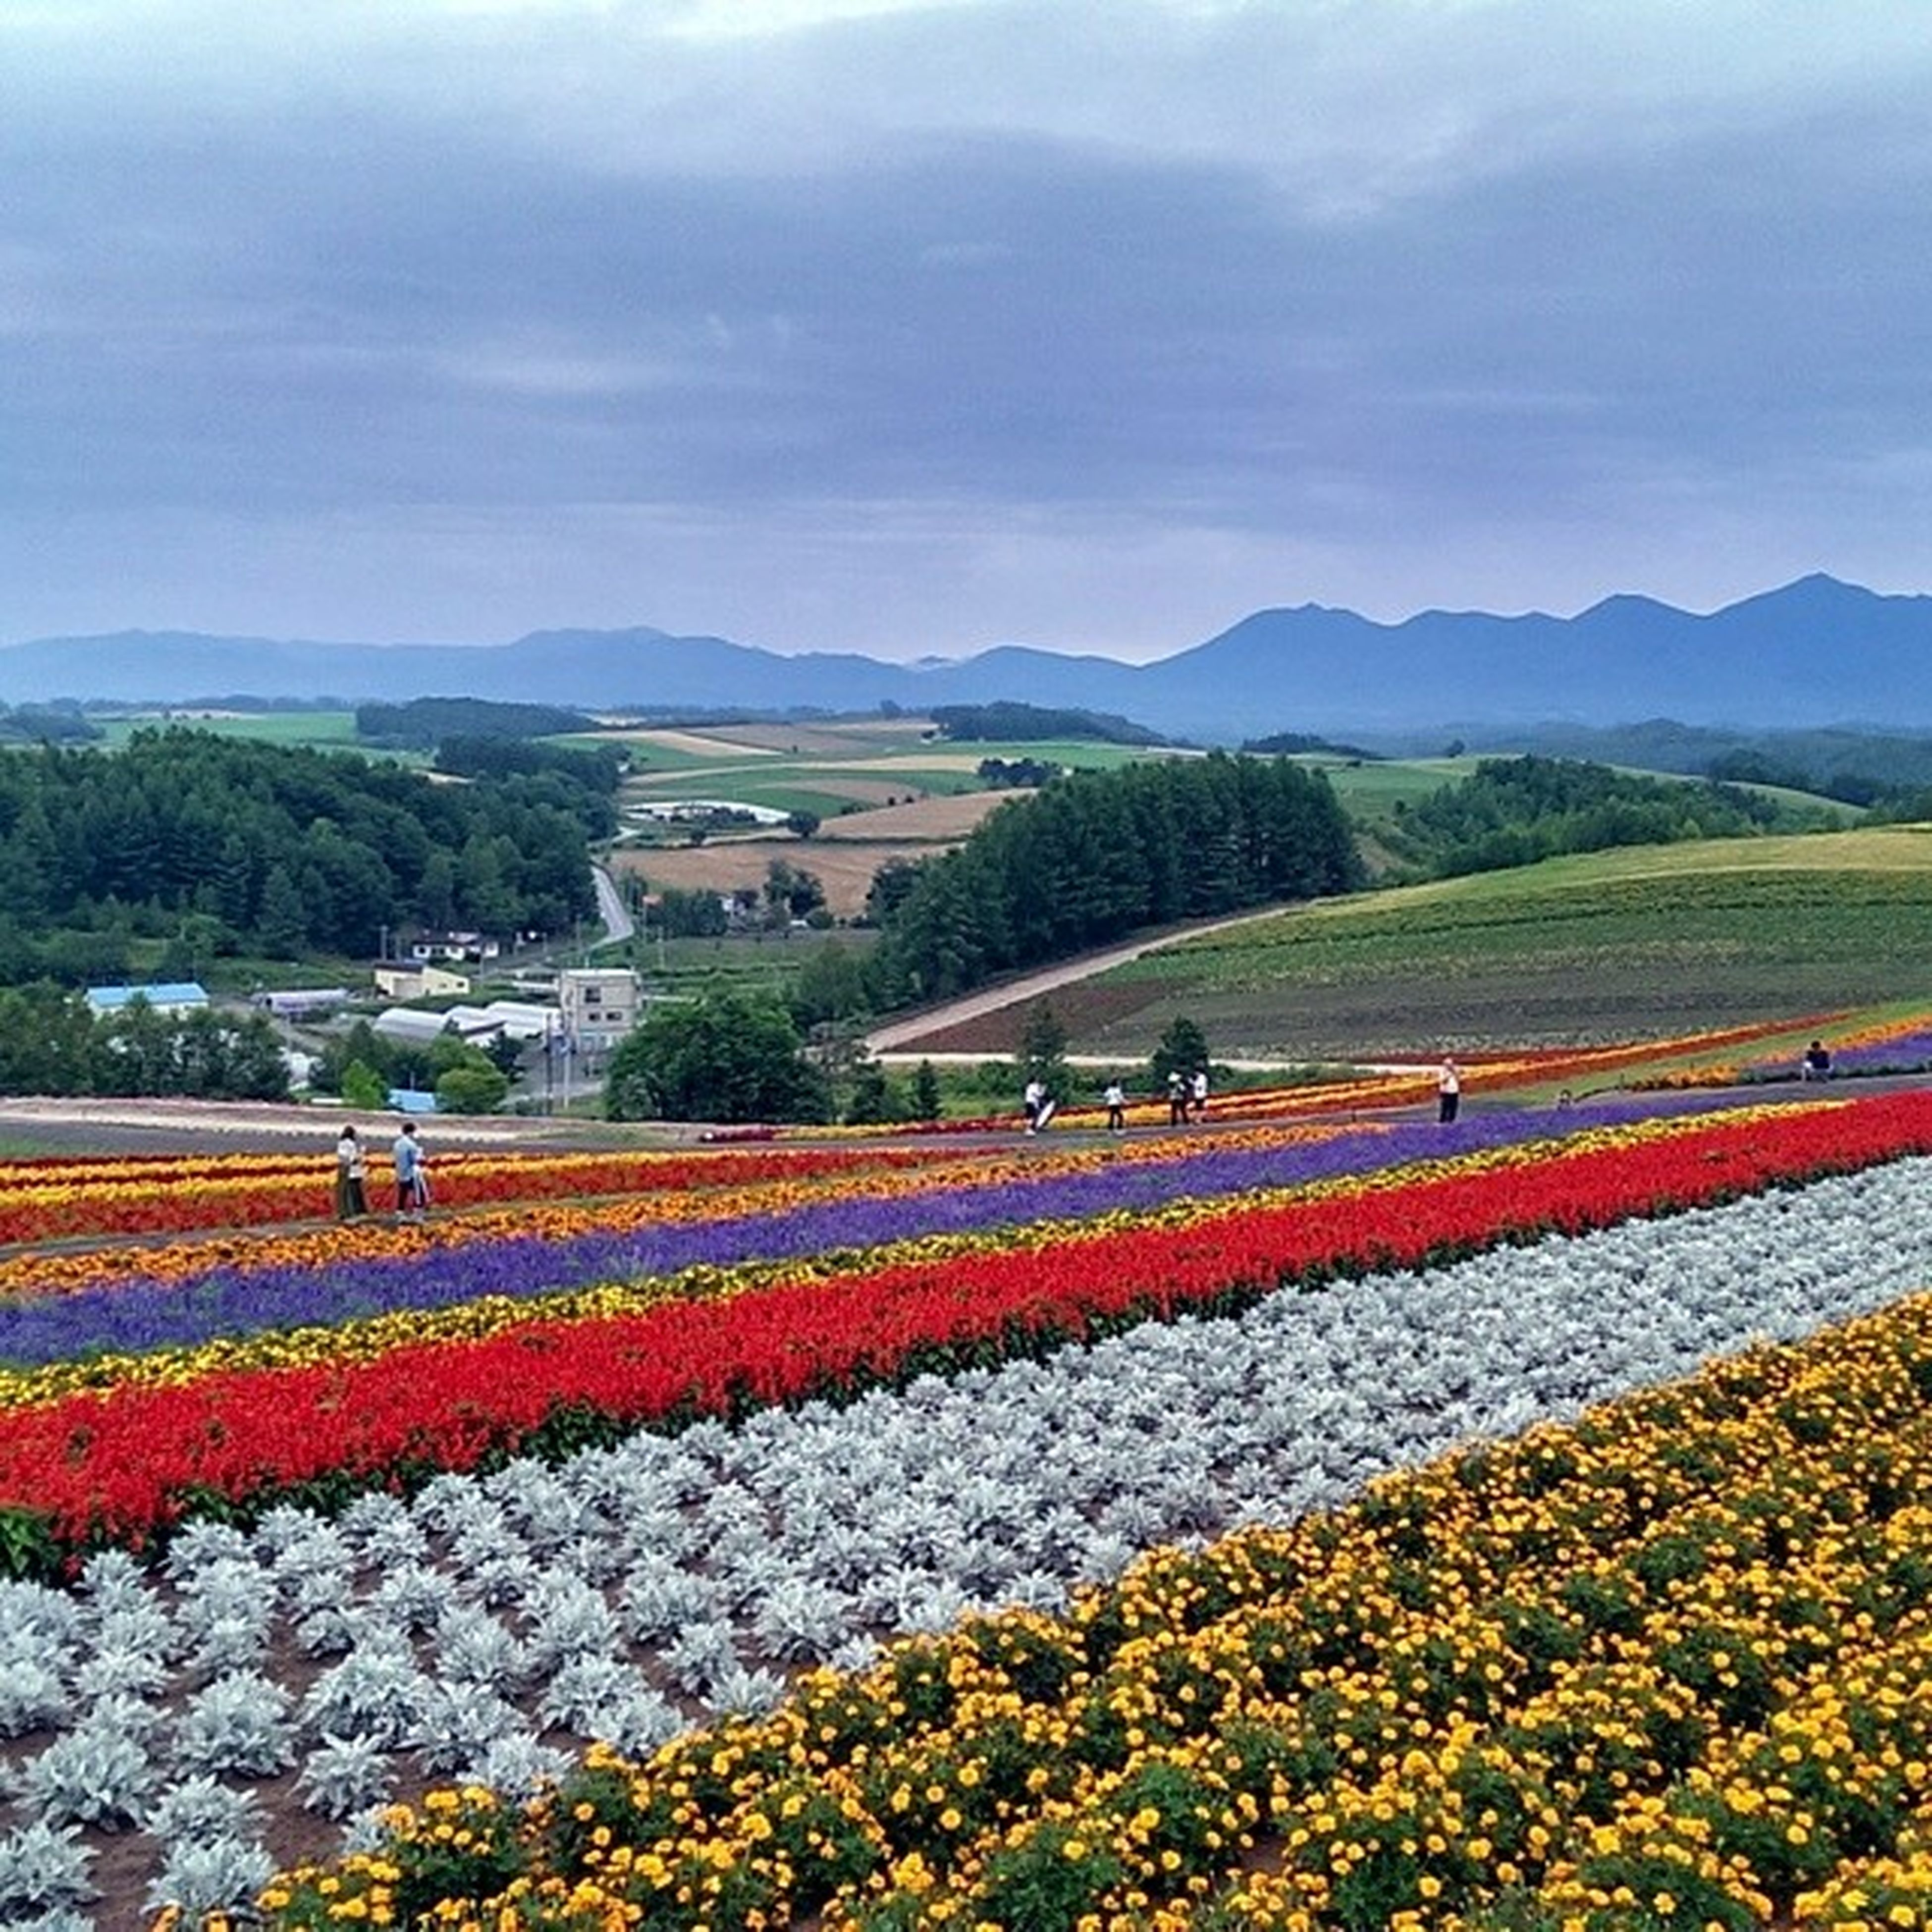 flower, sky, mountain, beauty in nature, landscape, growth, field, cloud - sky, nature, tranquil scene, scenics, agriculture, mountain range, tranquility, rural scene, freshness, cloud, flowerbed, plant, red